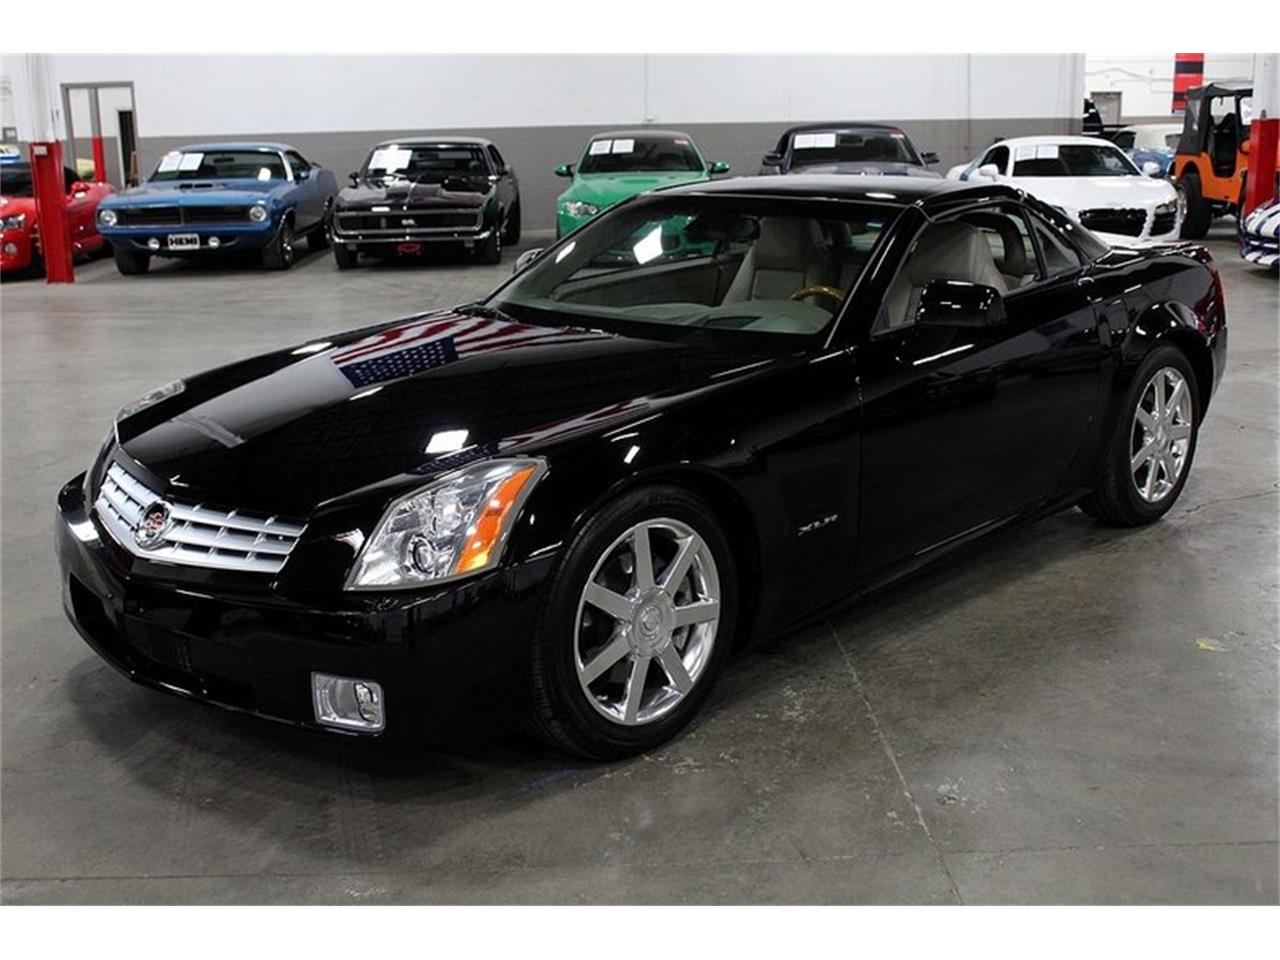 Large Picture of 2004 Cadillac XLR located in Michigan - $32,900.00 - PUP2